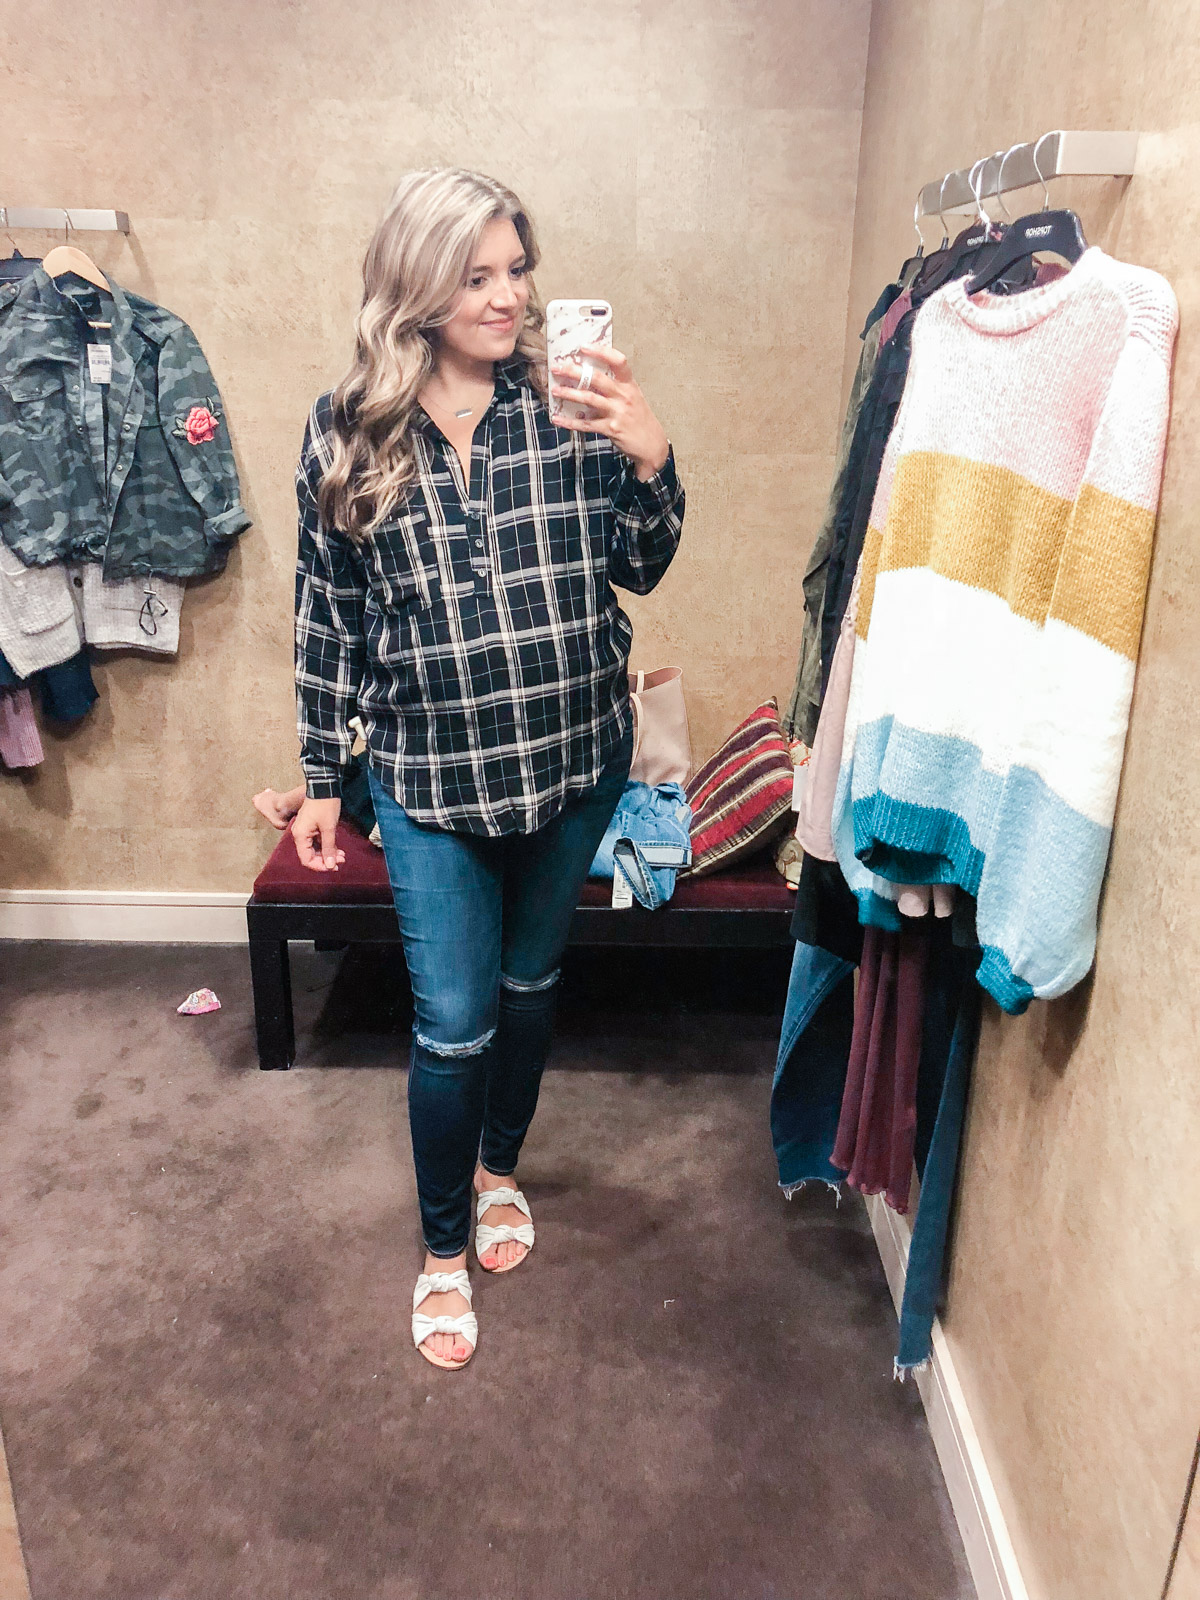 plaid popover - Nordstrom anniversary sale 2018 try-on session: over 25 items reviewed for fit and size! | bylaurenm.com